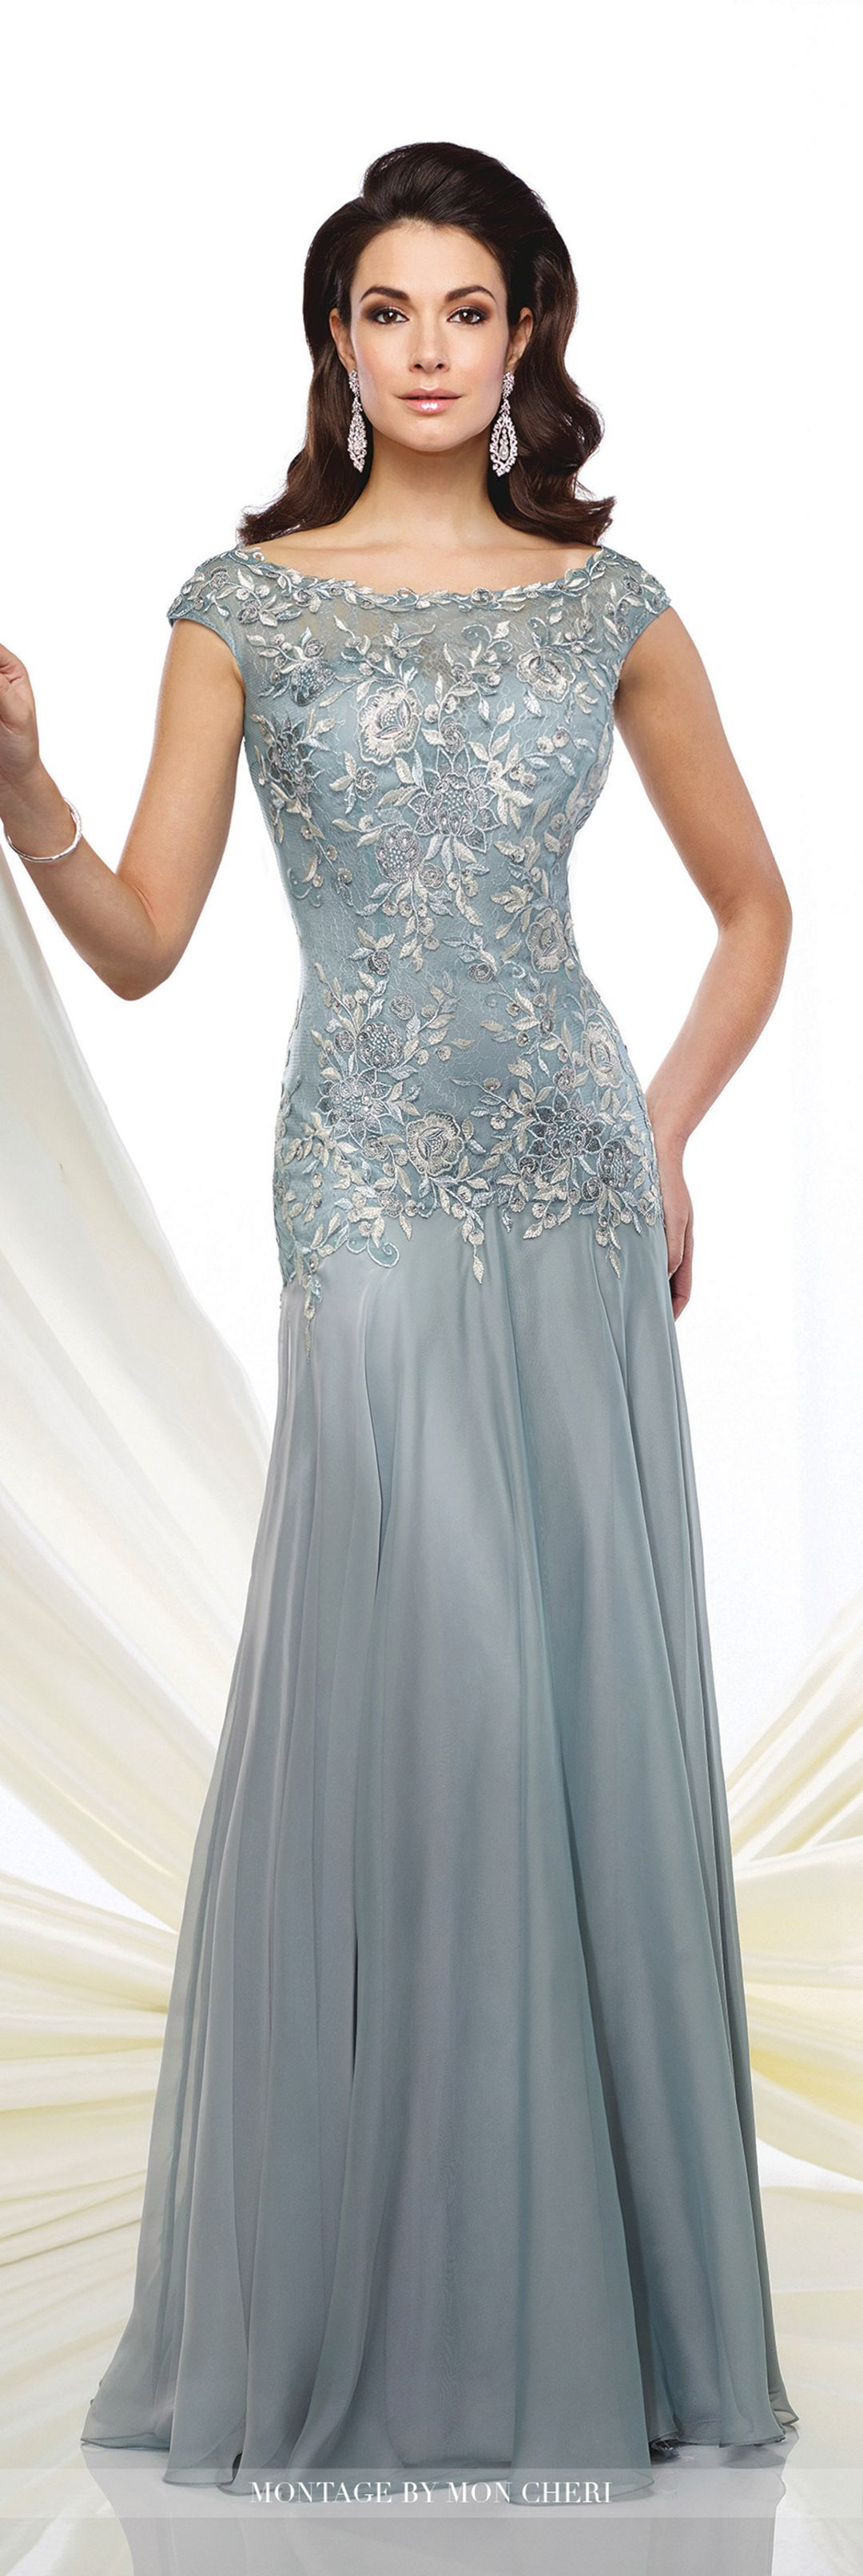 Awesome 55+ Best Mother of the Bride and Groom Dresses Ideas https ...